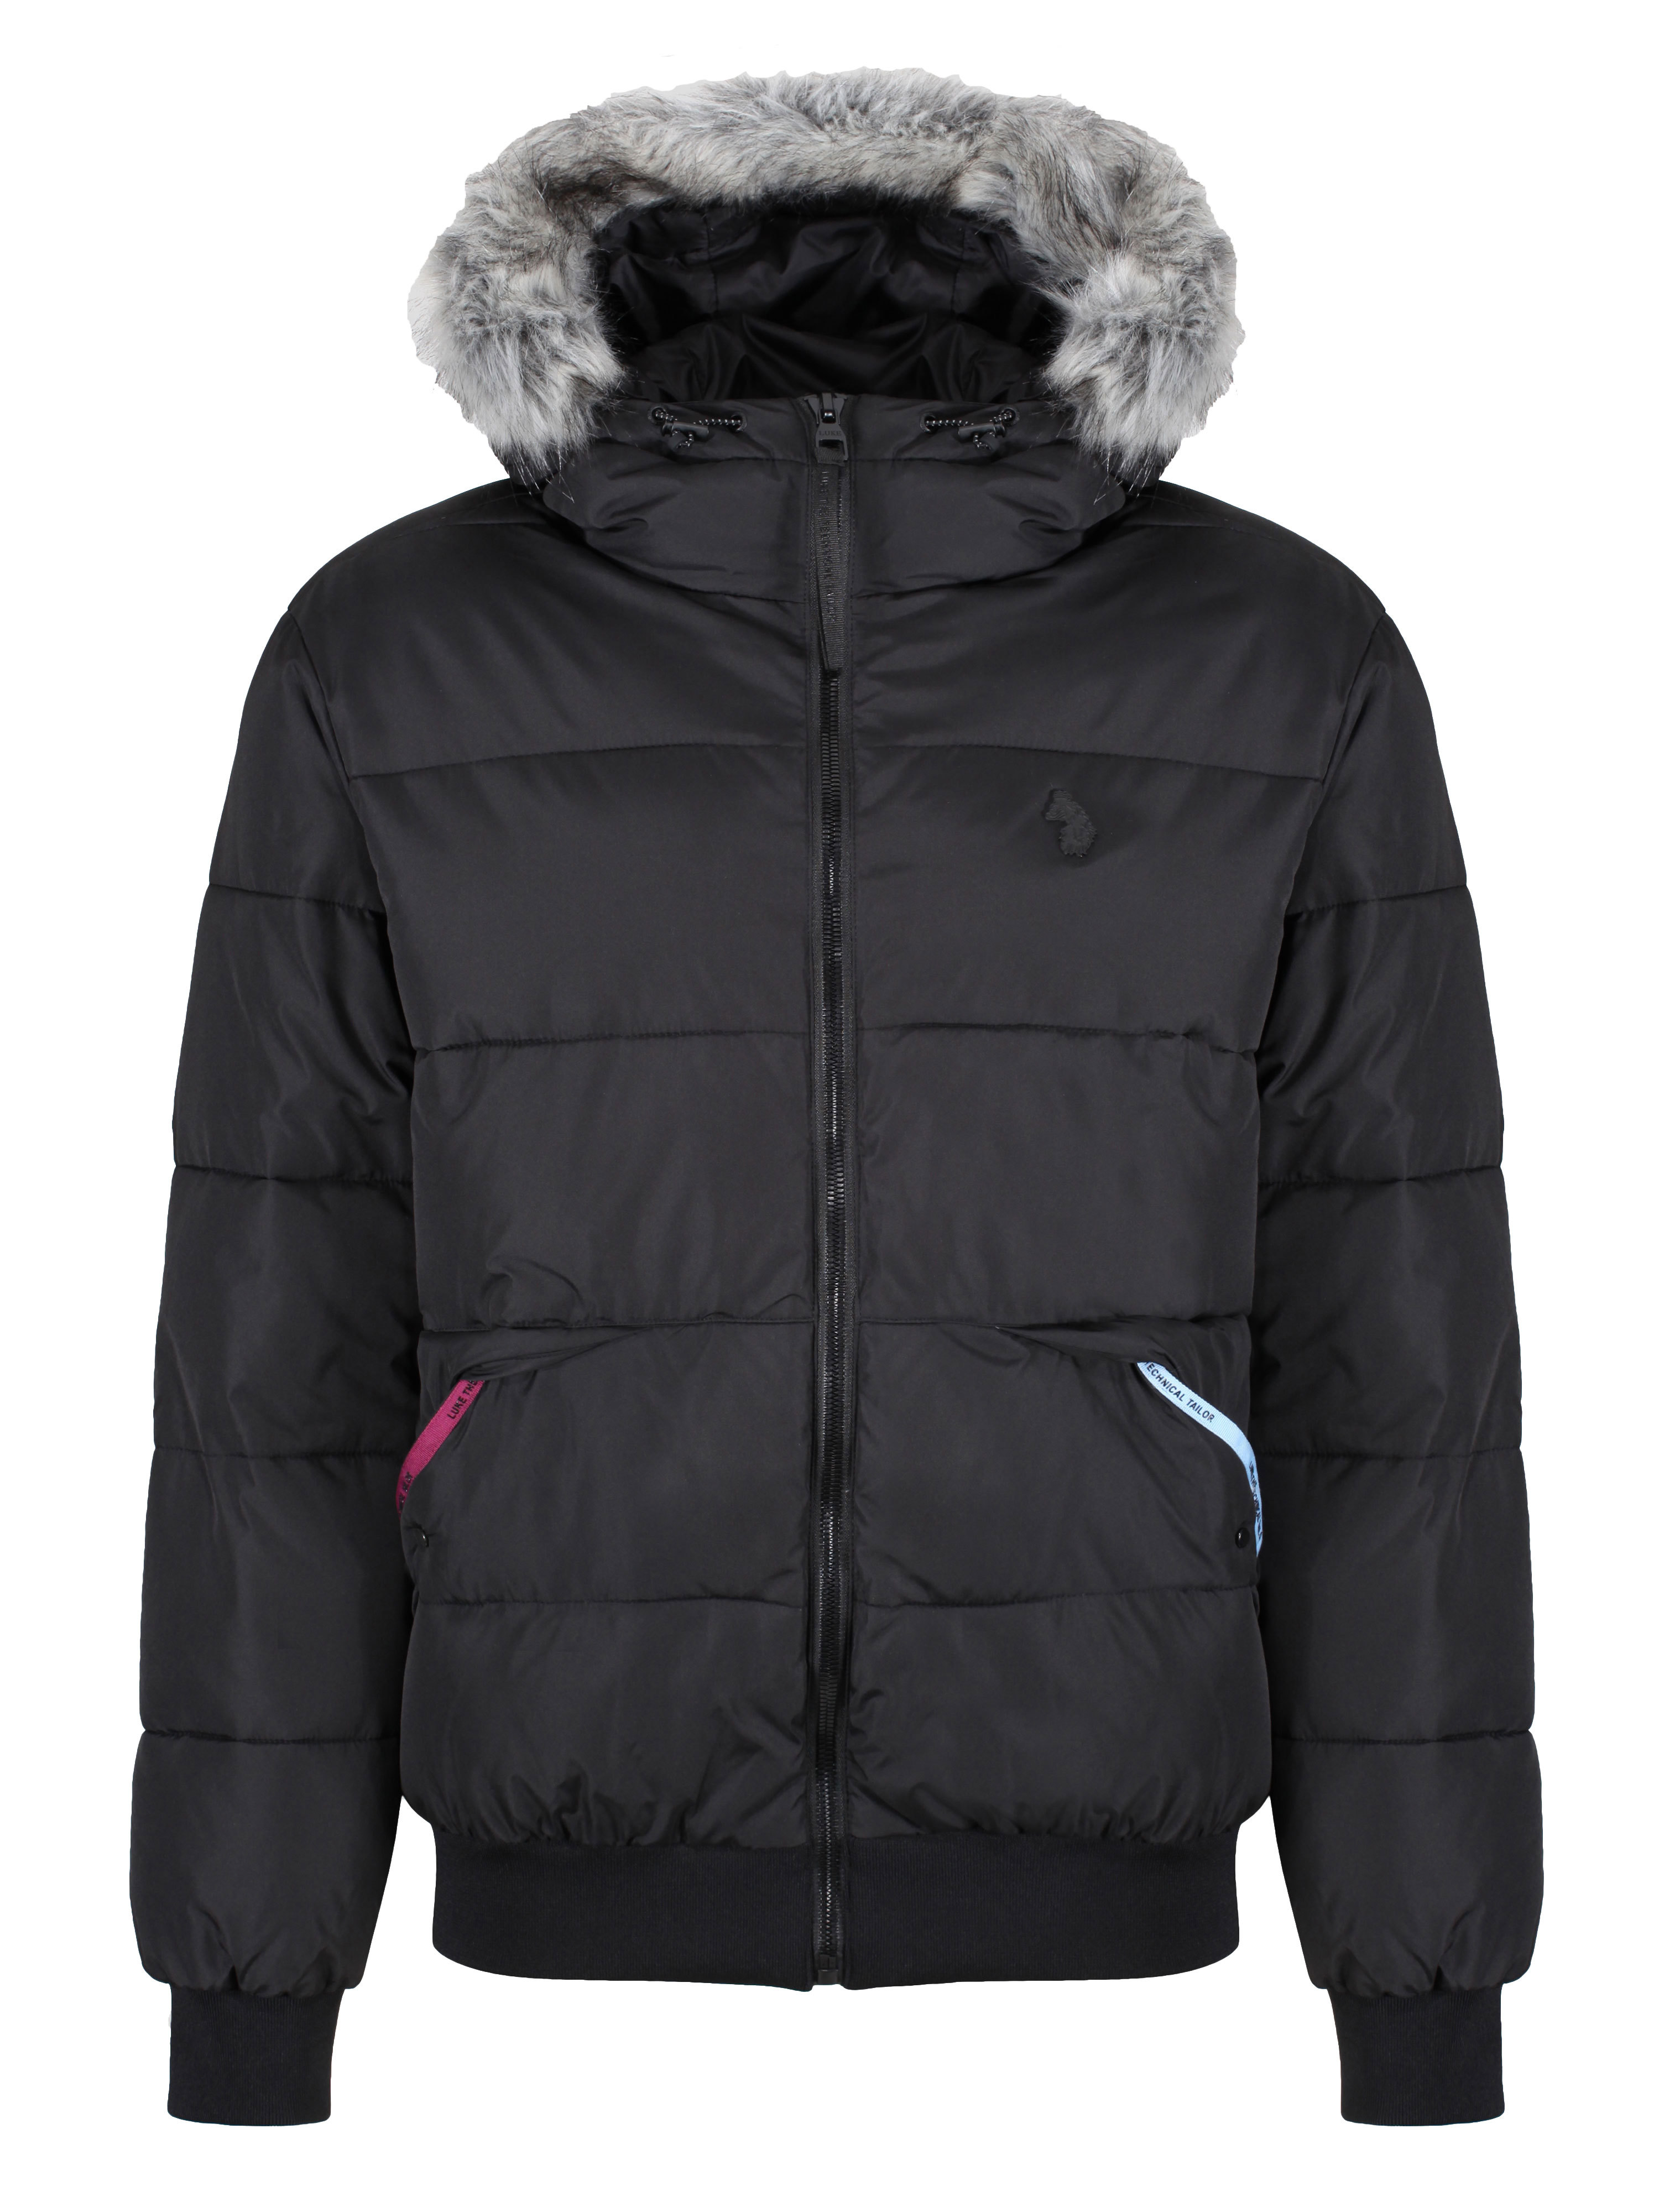 LUKE 1977 1982 Quilted Jacket